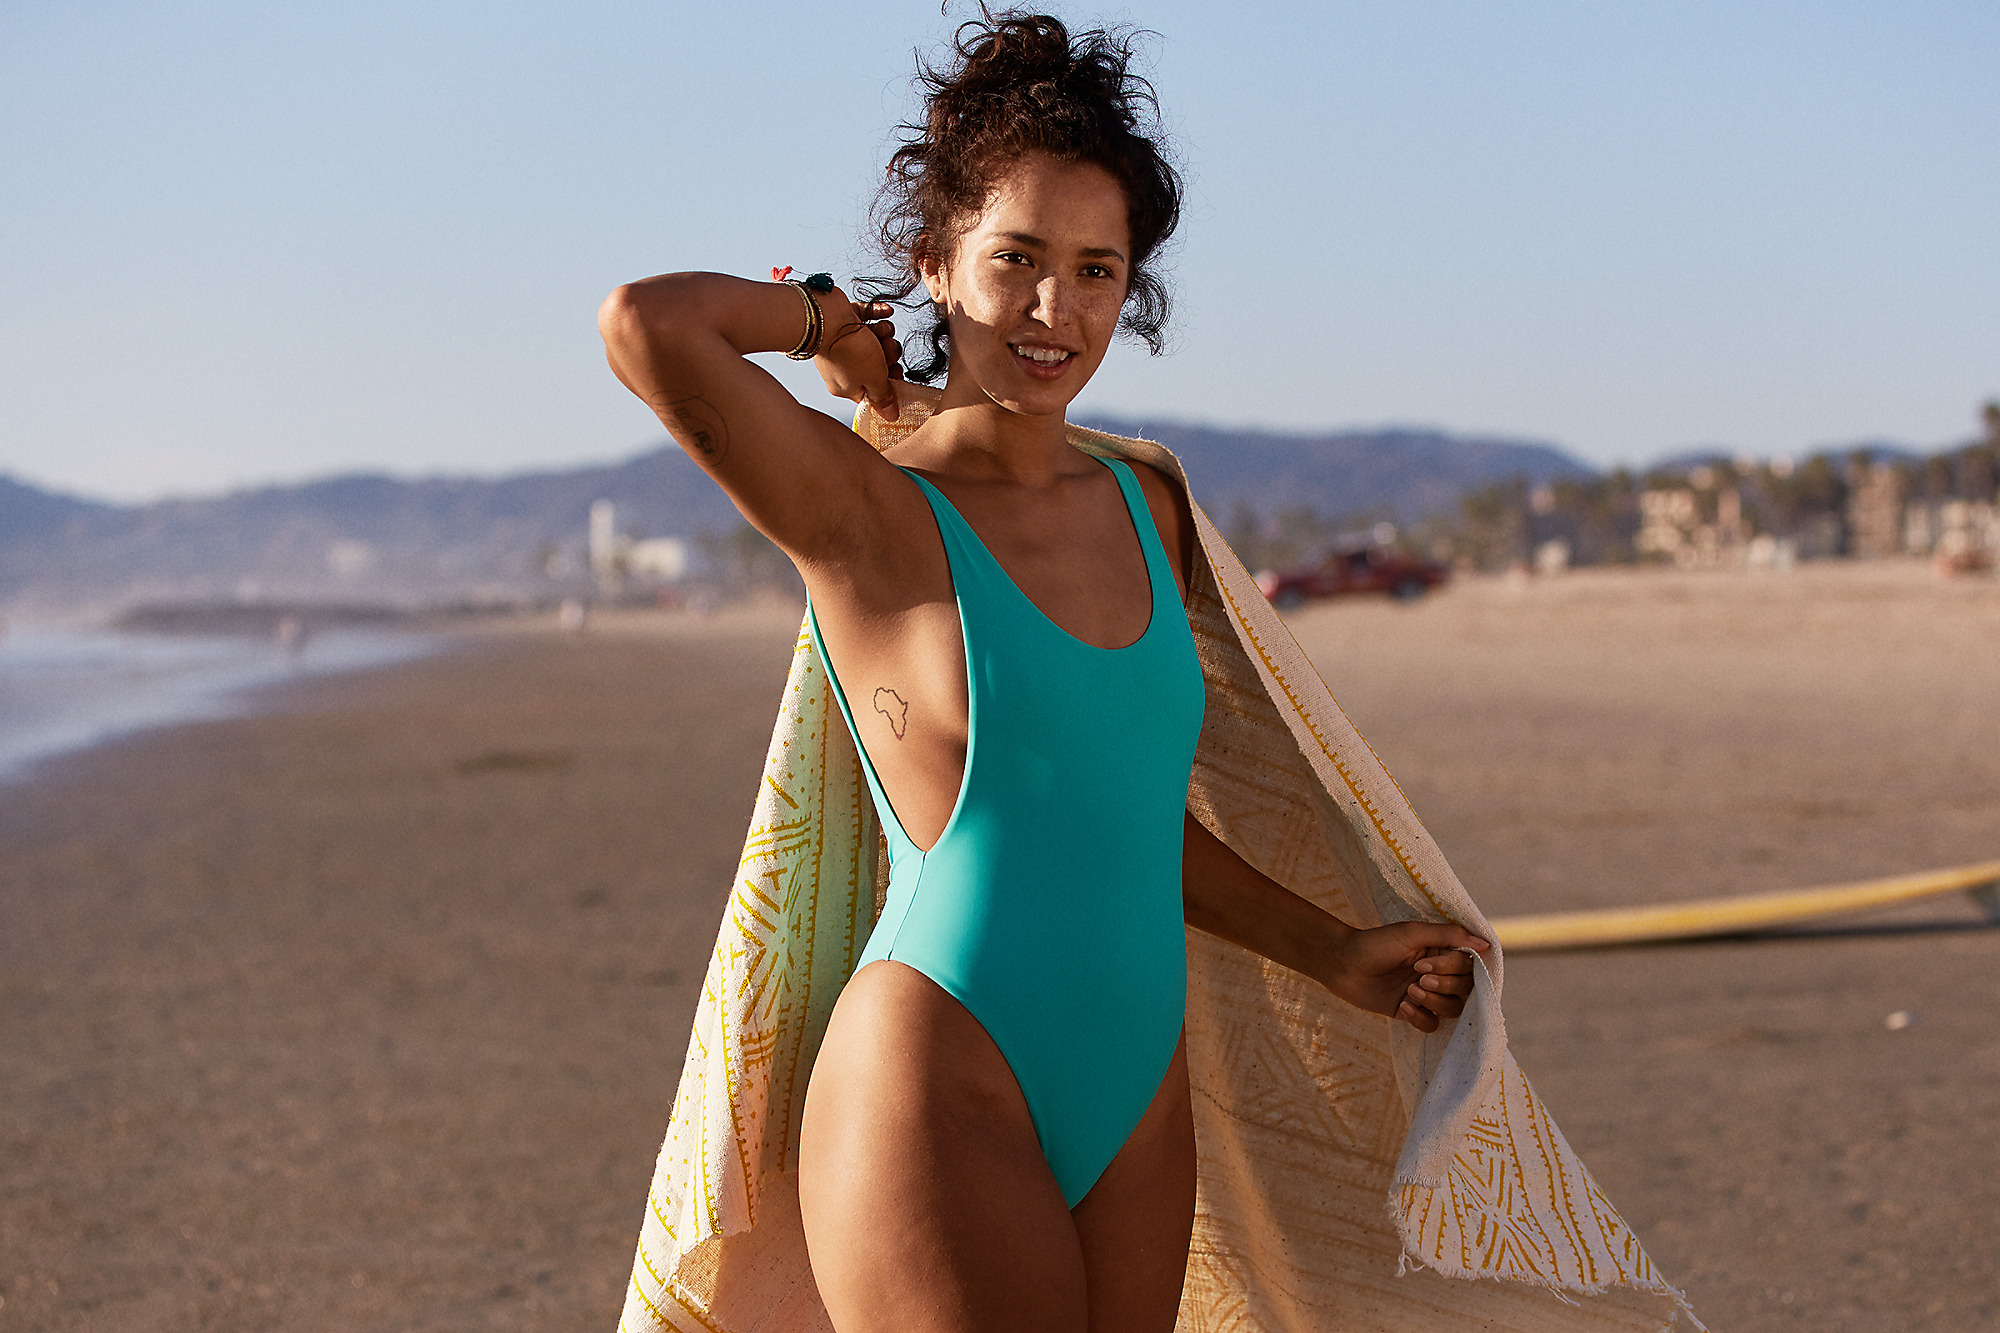 760ad71a55f44 I am in love with this one piece swimsuit! Scoop neck suits have definitely  been on the rise lately, and this one from Aerie is simple and flattering.